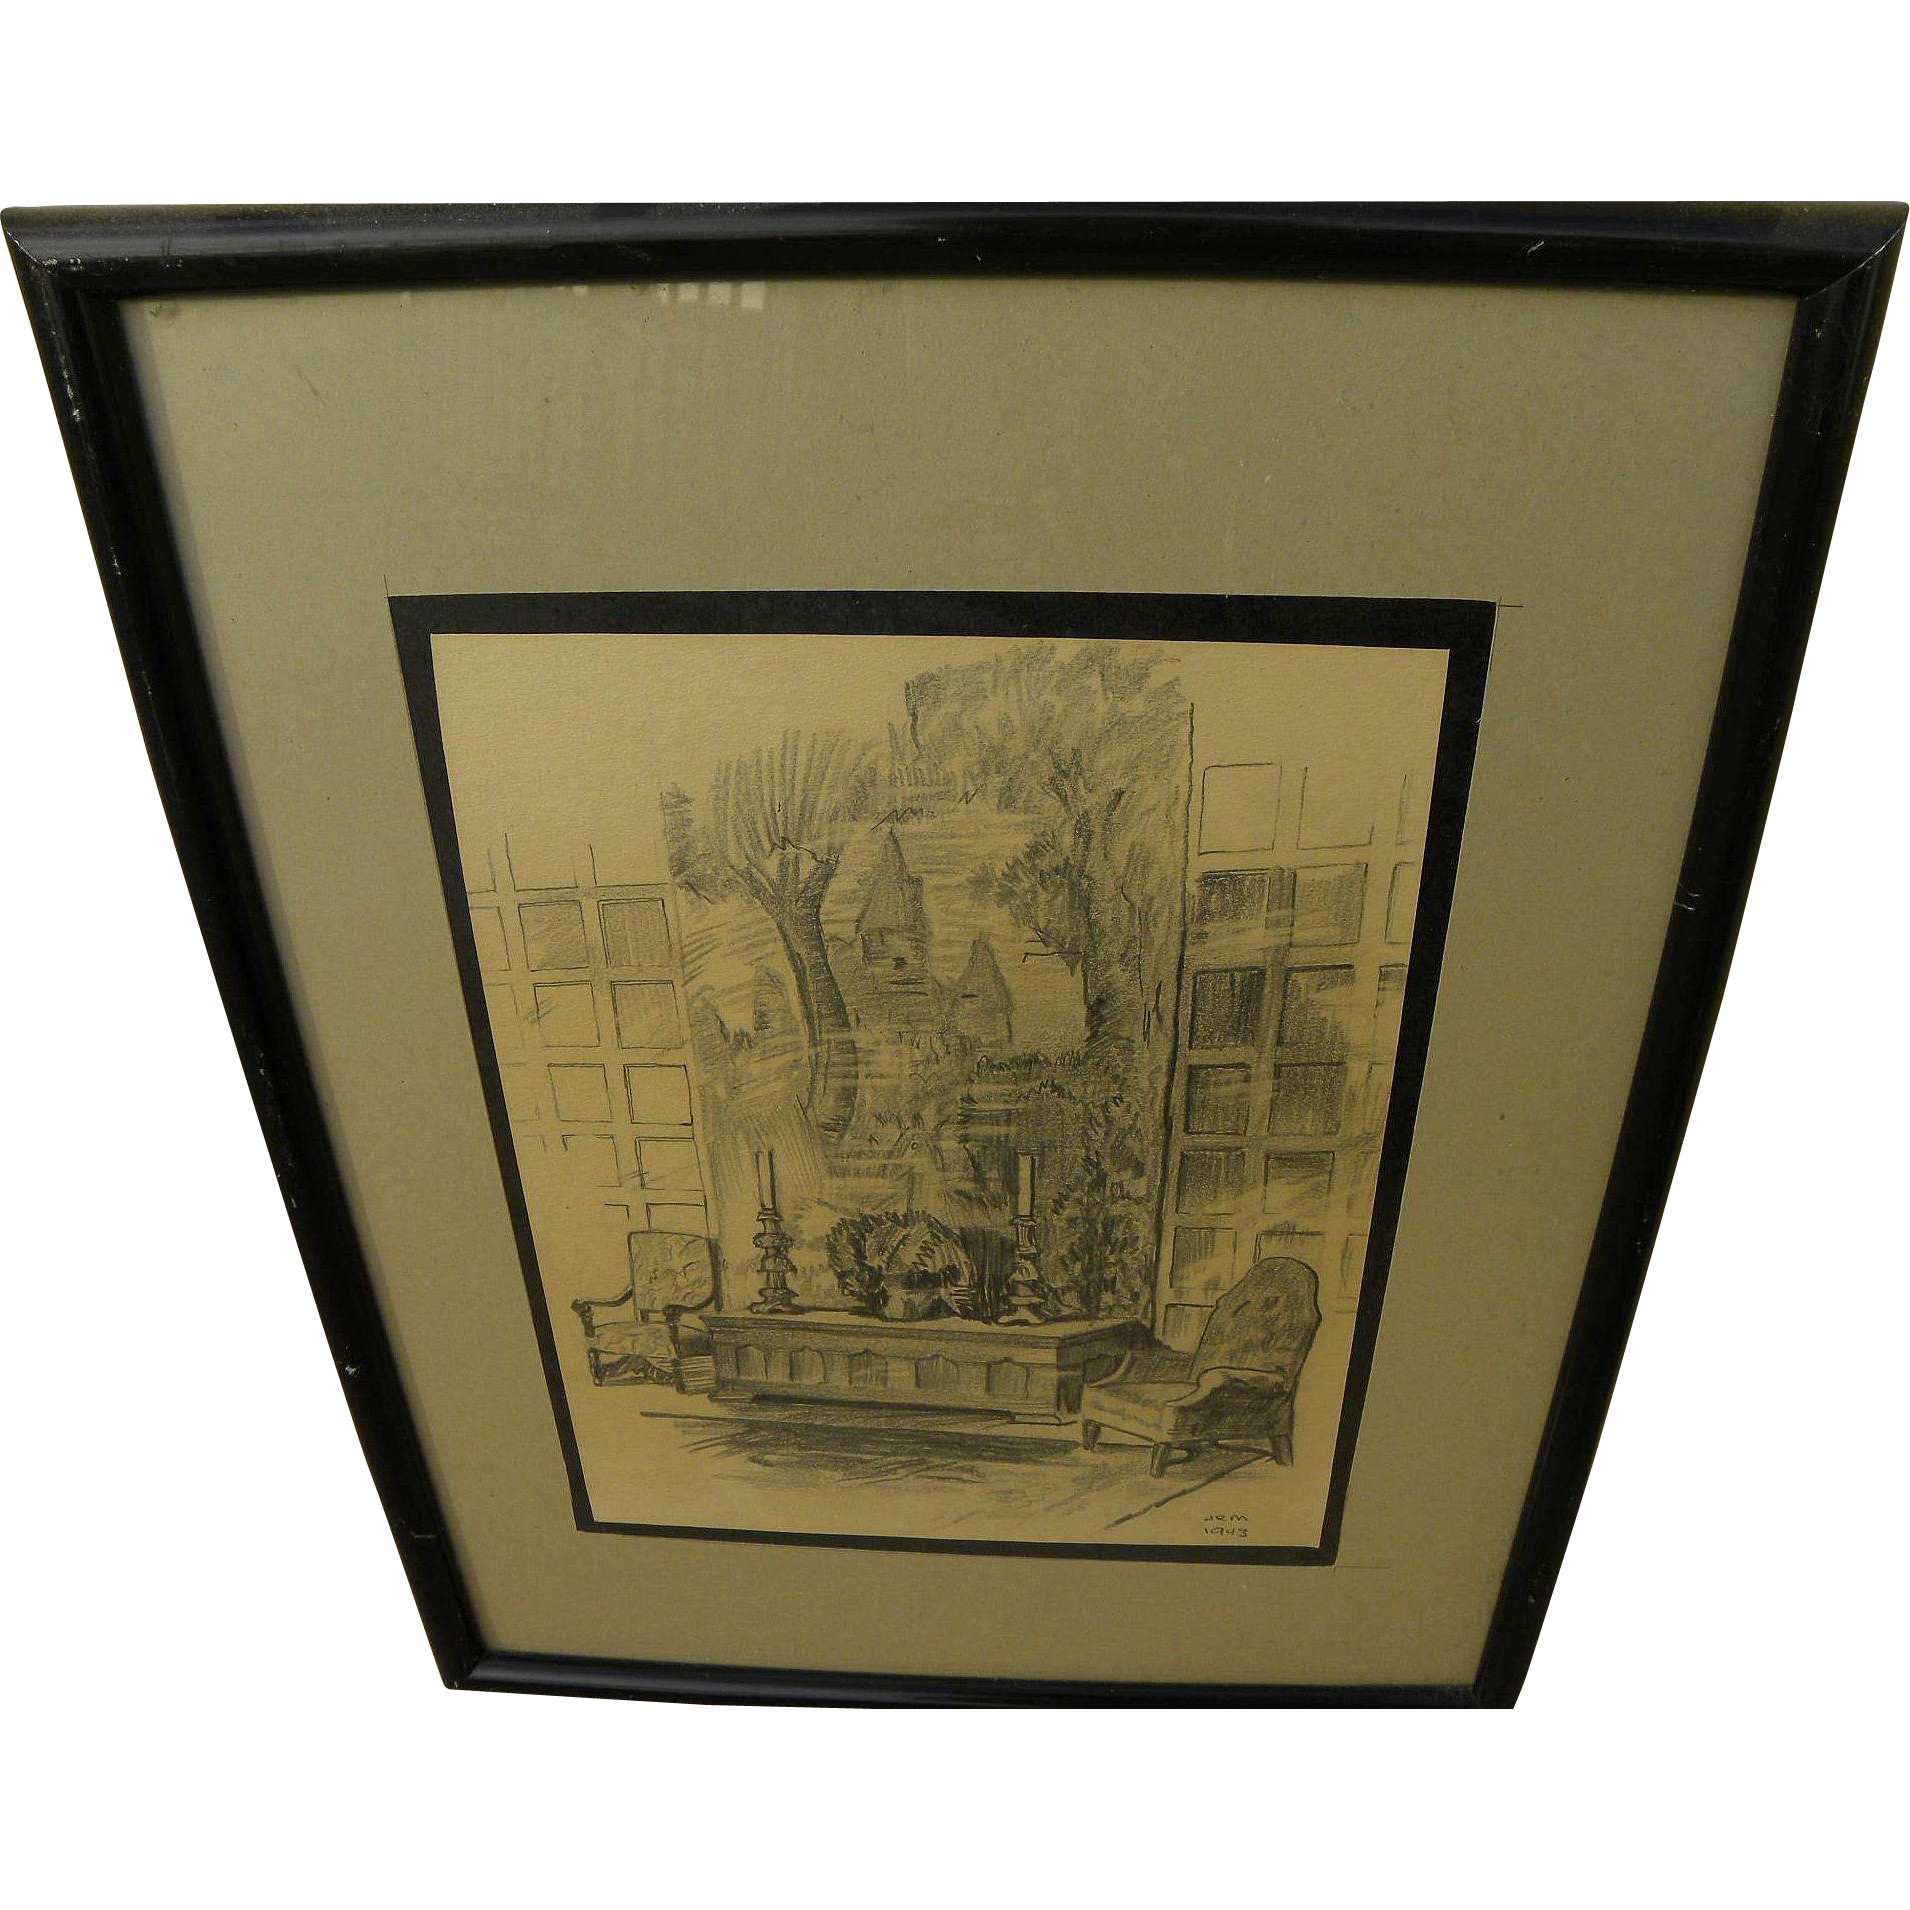 JOHN RICHARD MOORE (1925-2009) early pencil drawing by cinematographer co-founder of Panavision